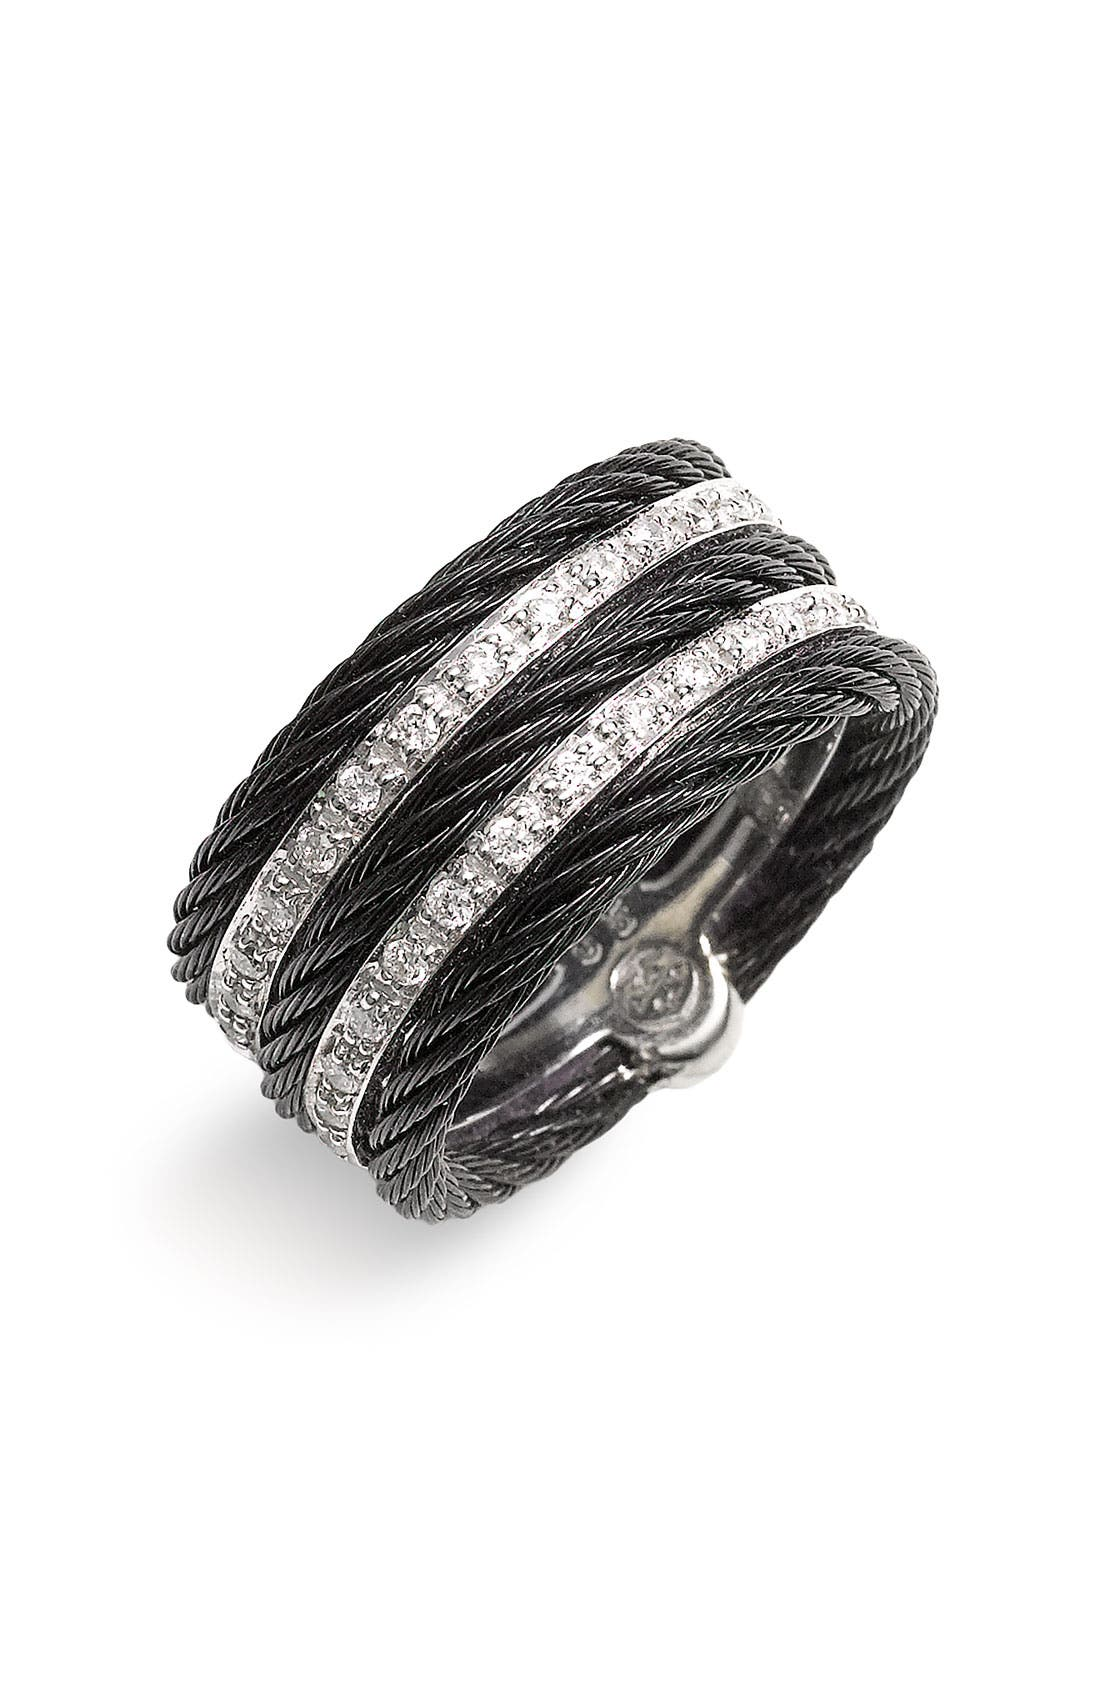 Alternate Image 1 Selected - ALOR® 5 Row Diamond Ring